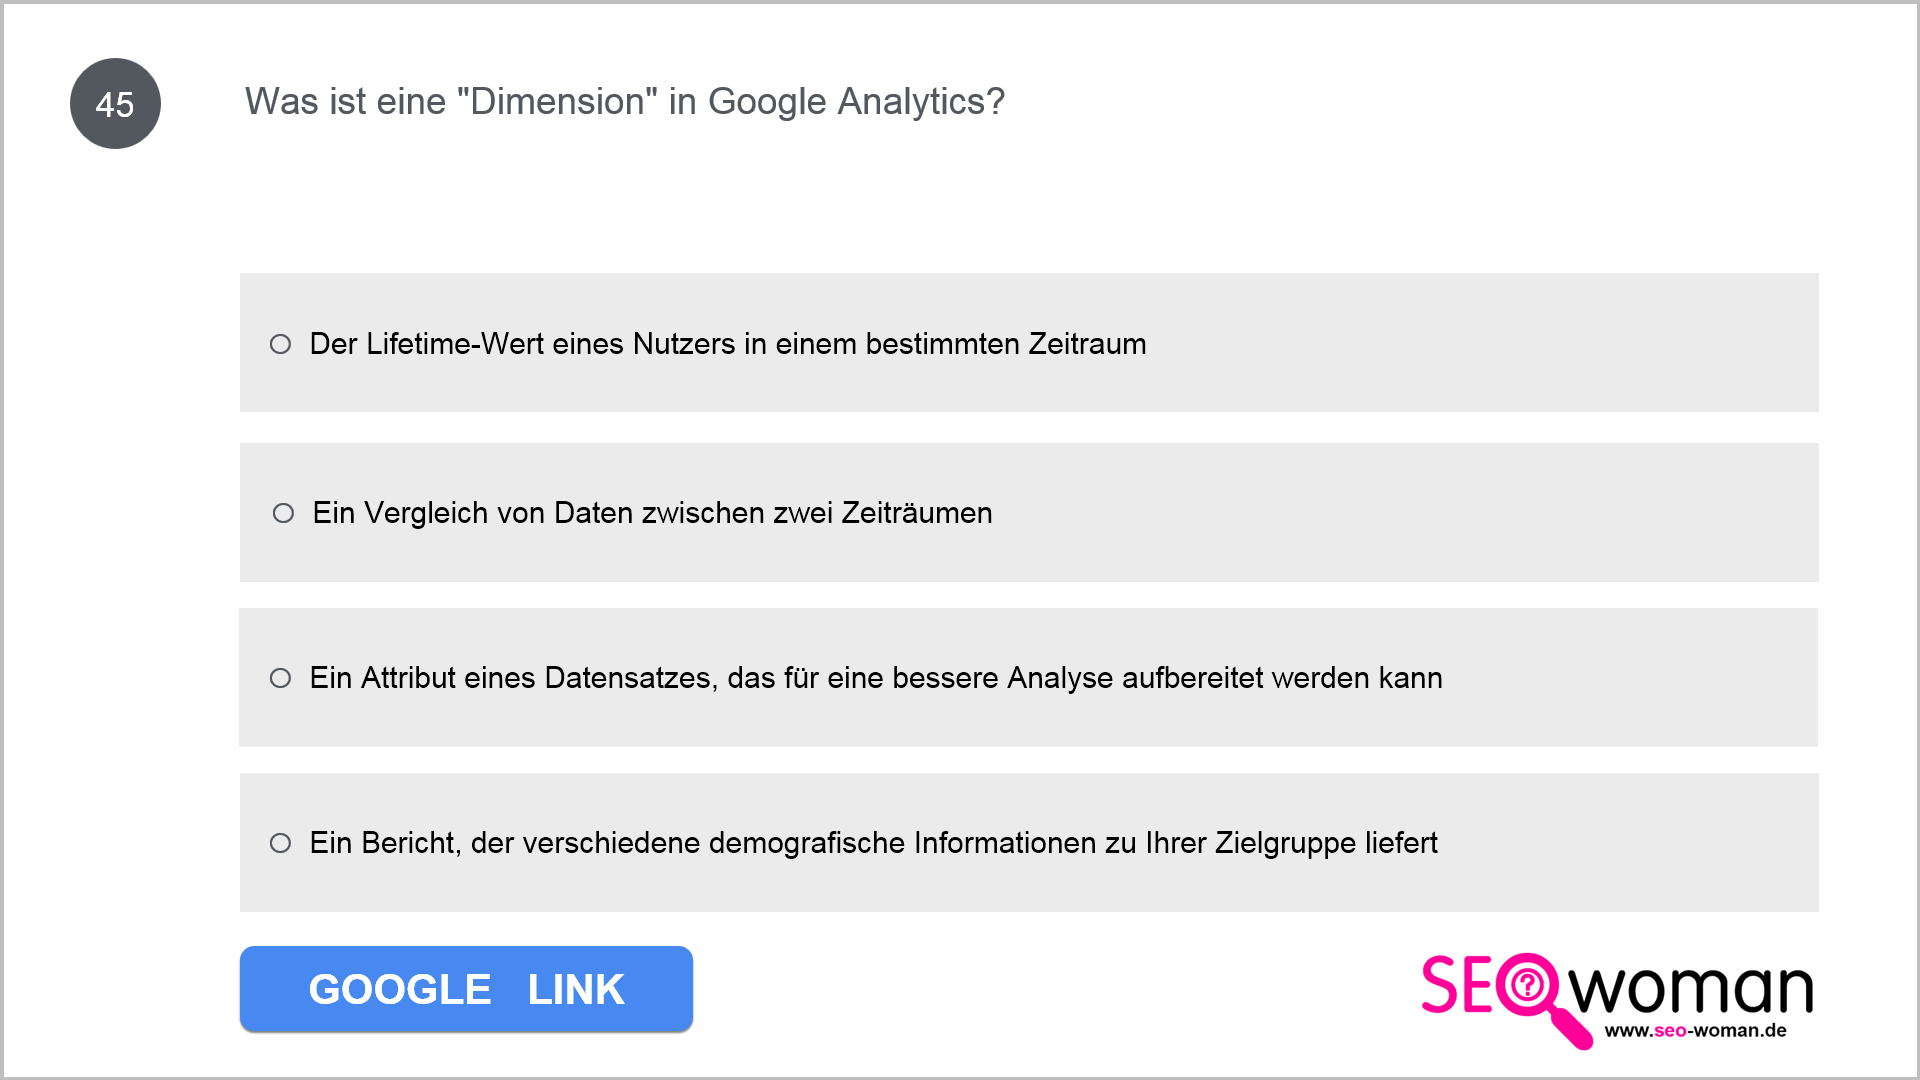 Was ist eine Dimension in Google Analytics?